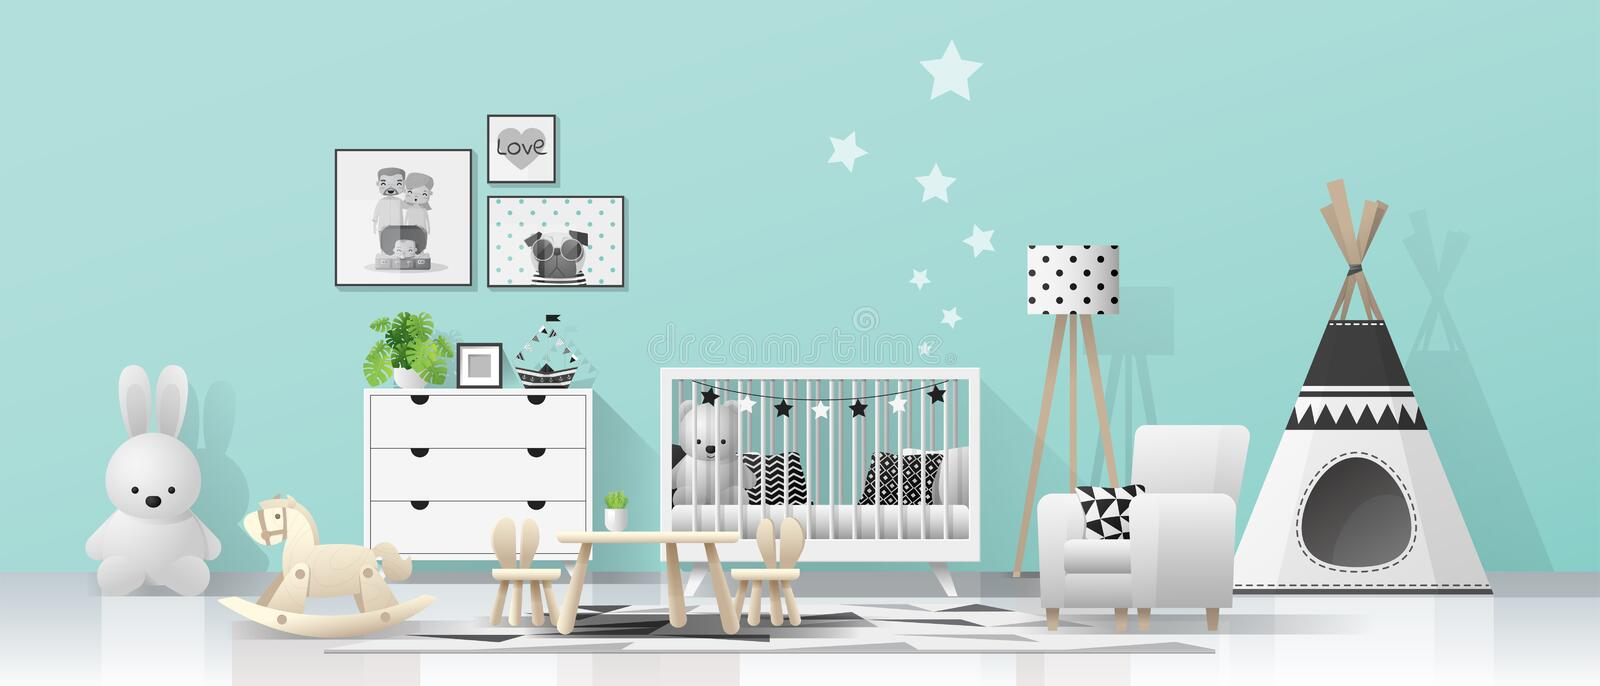 Interior background with modern baby room royalty free illustration